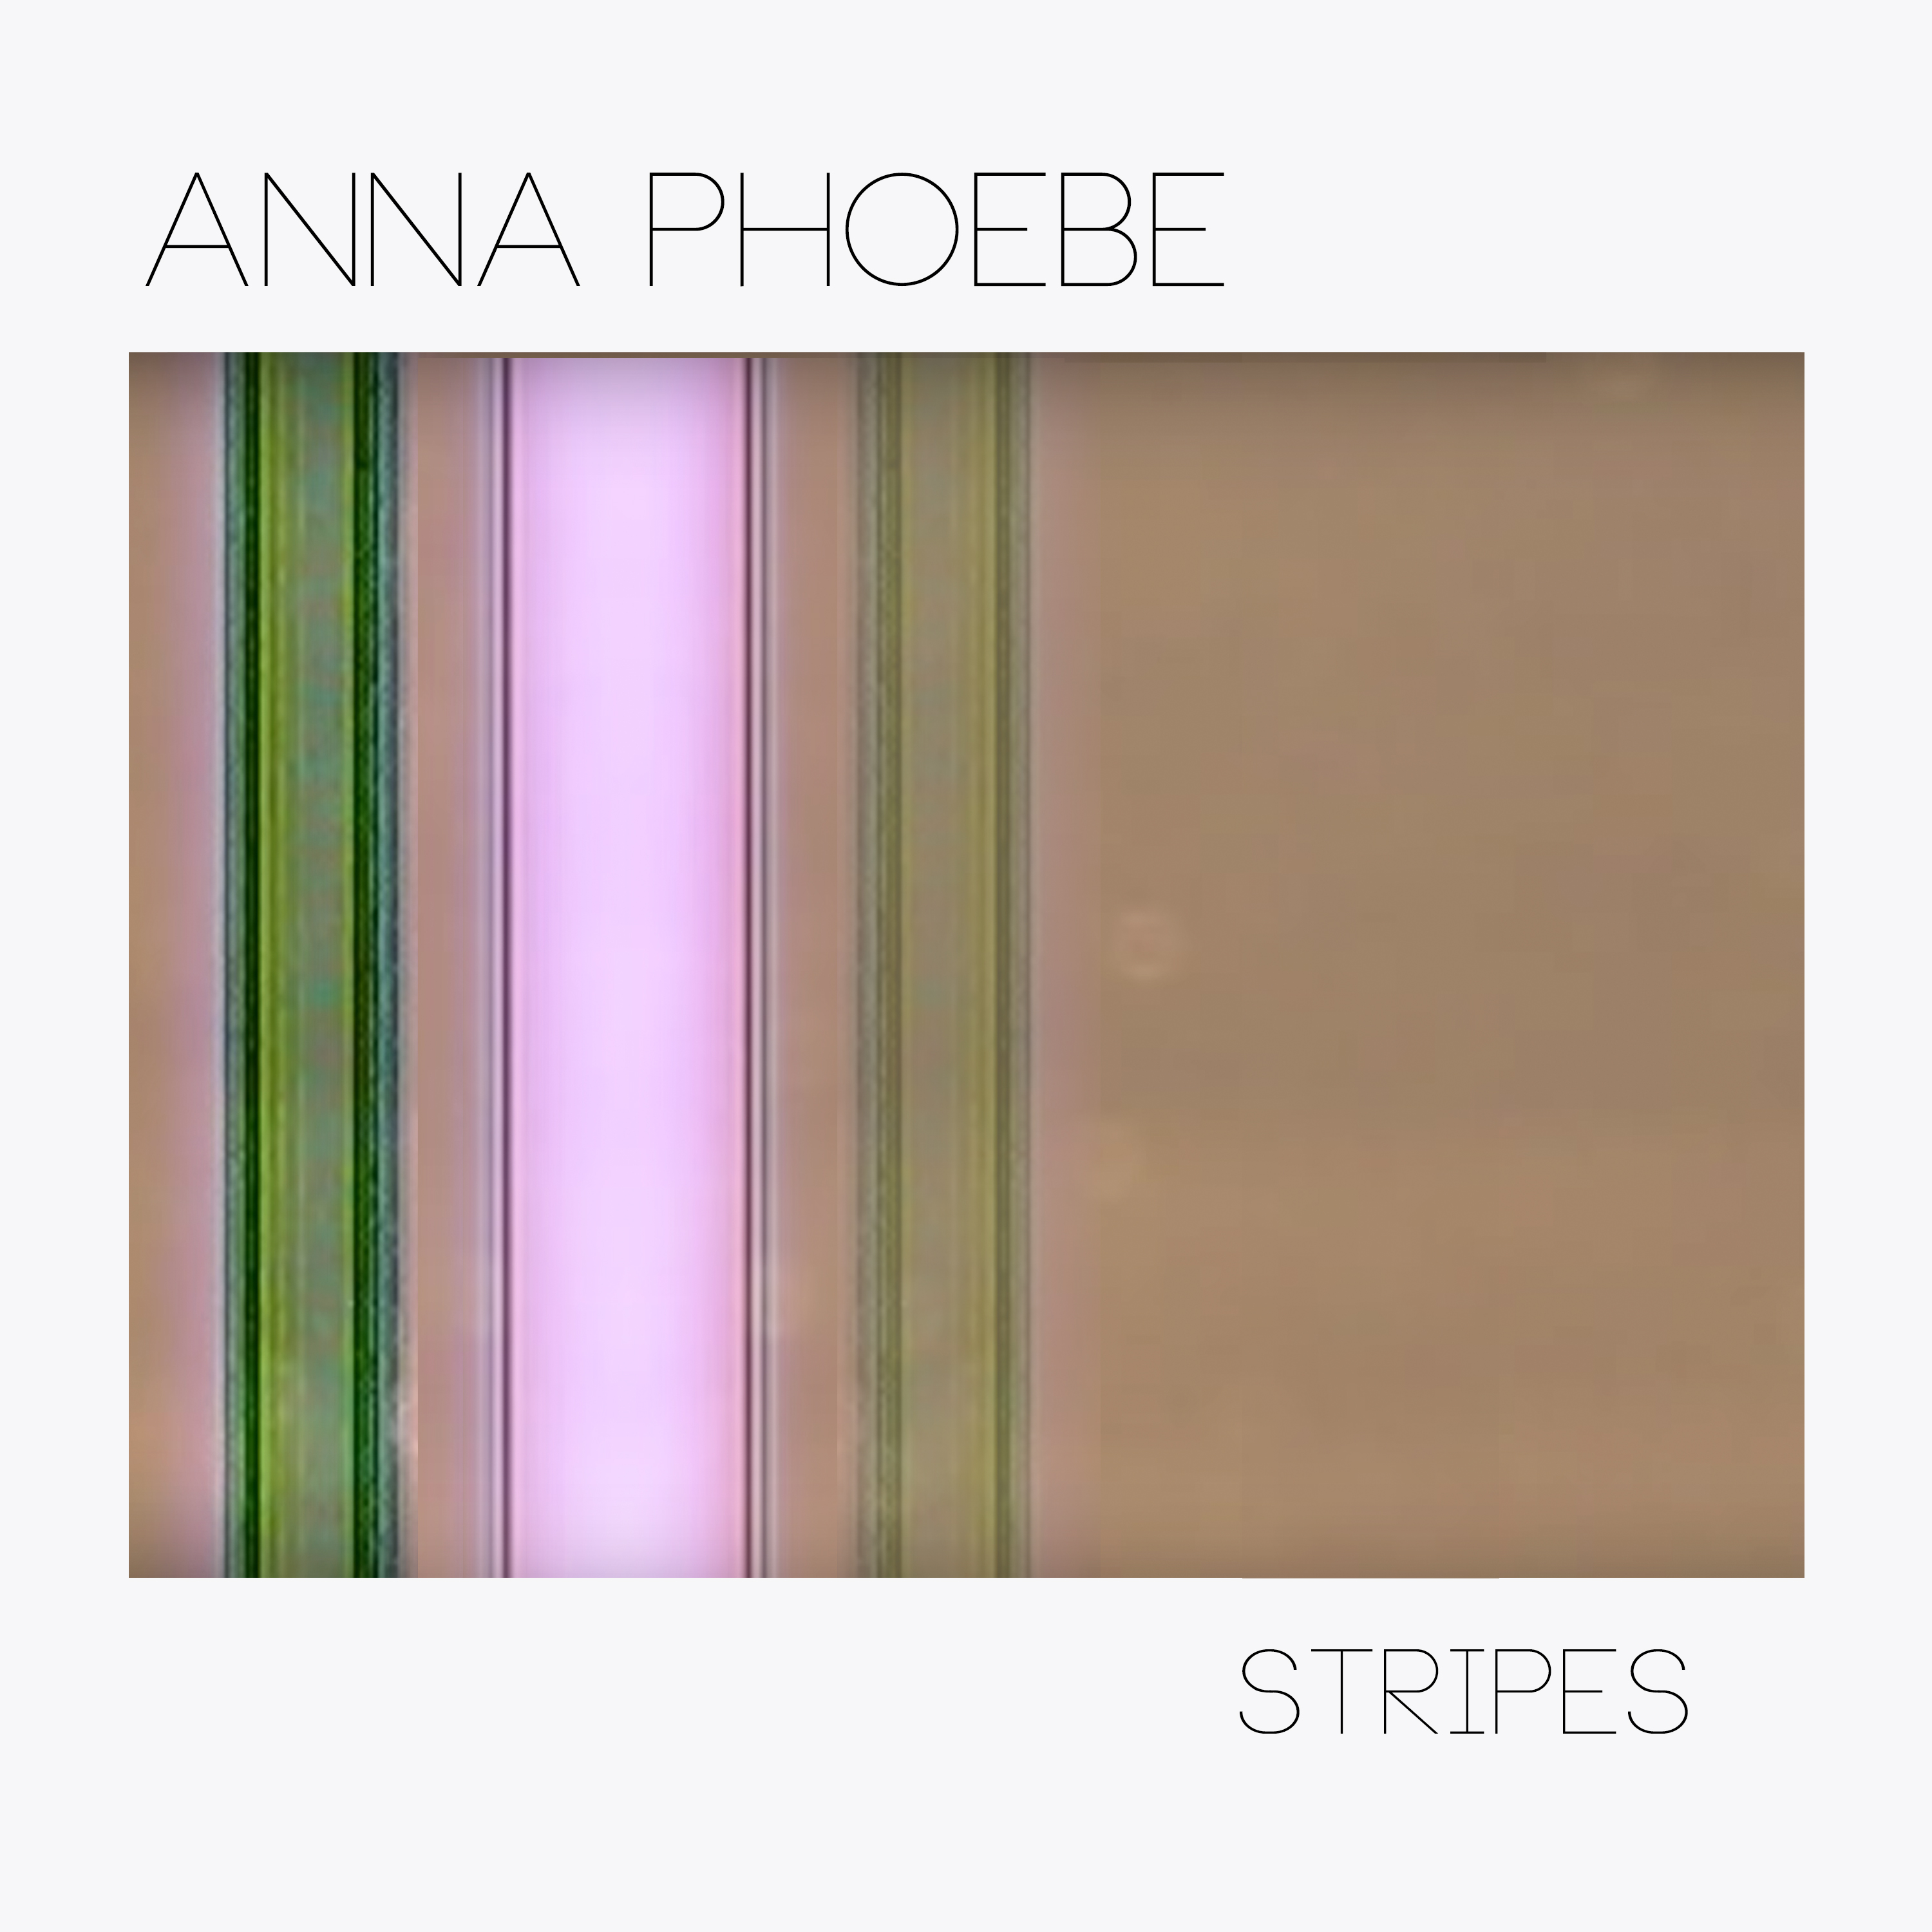 Anna Phoebe stripes